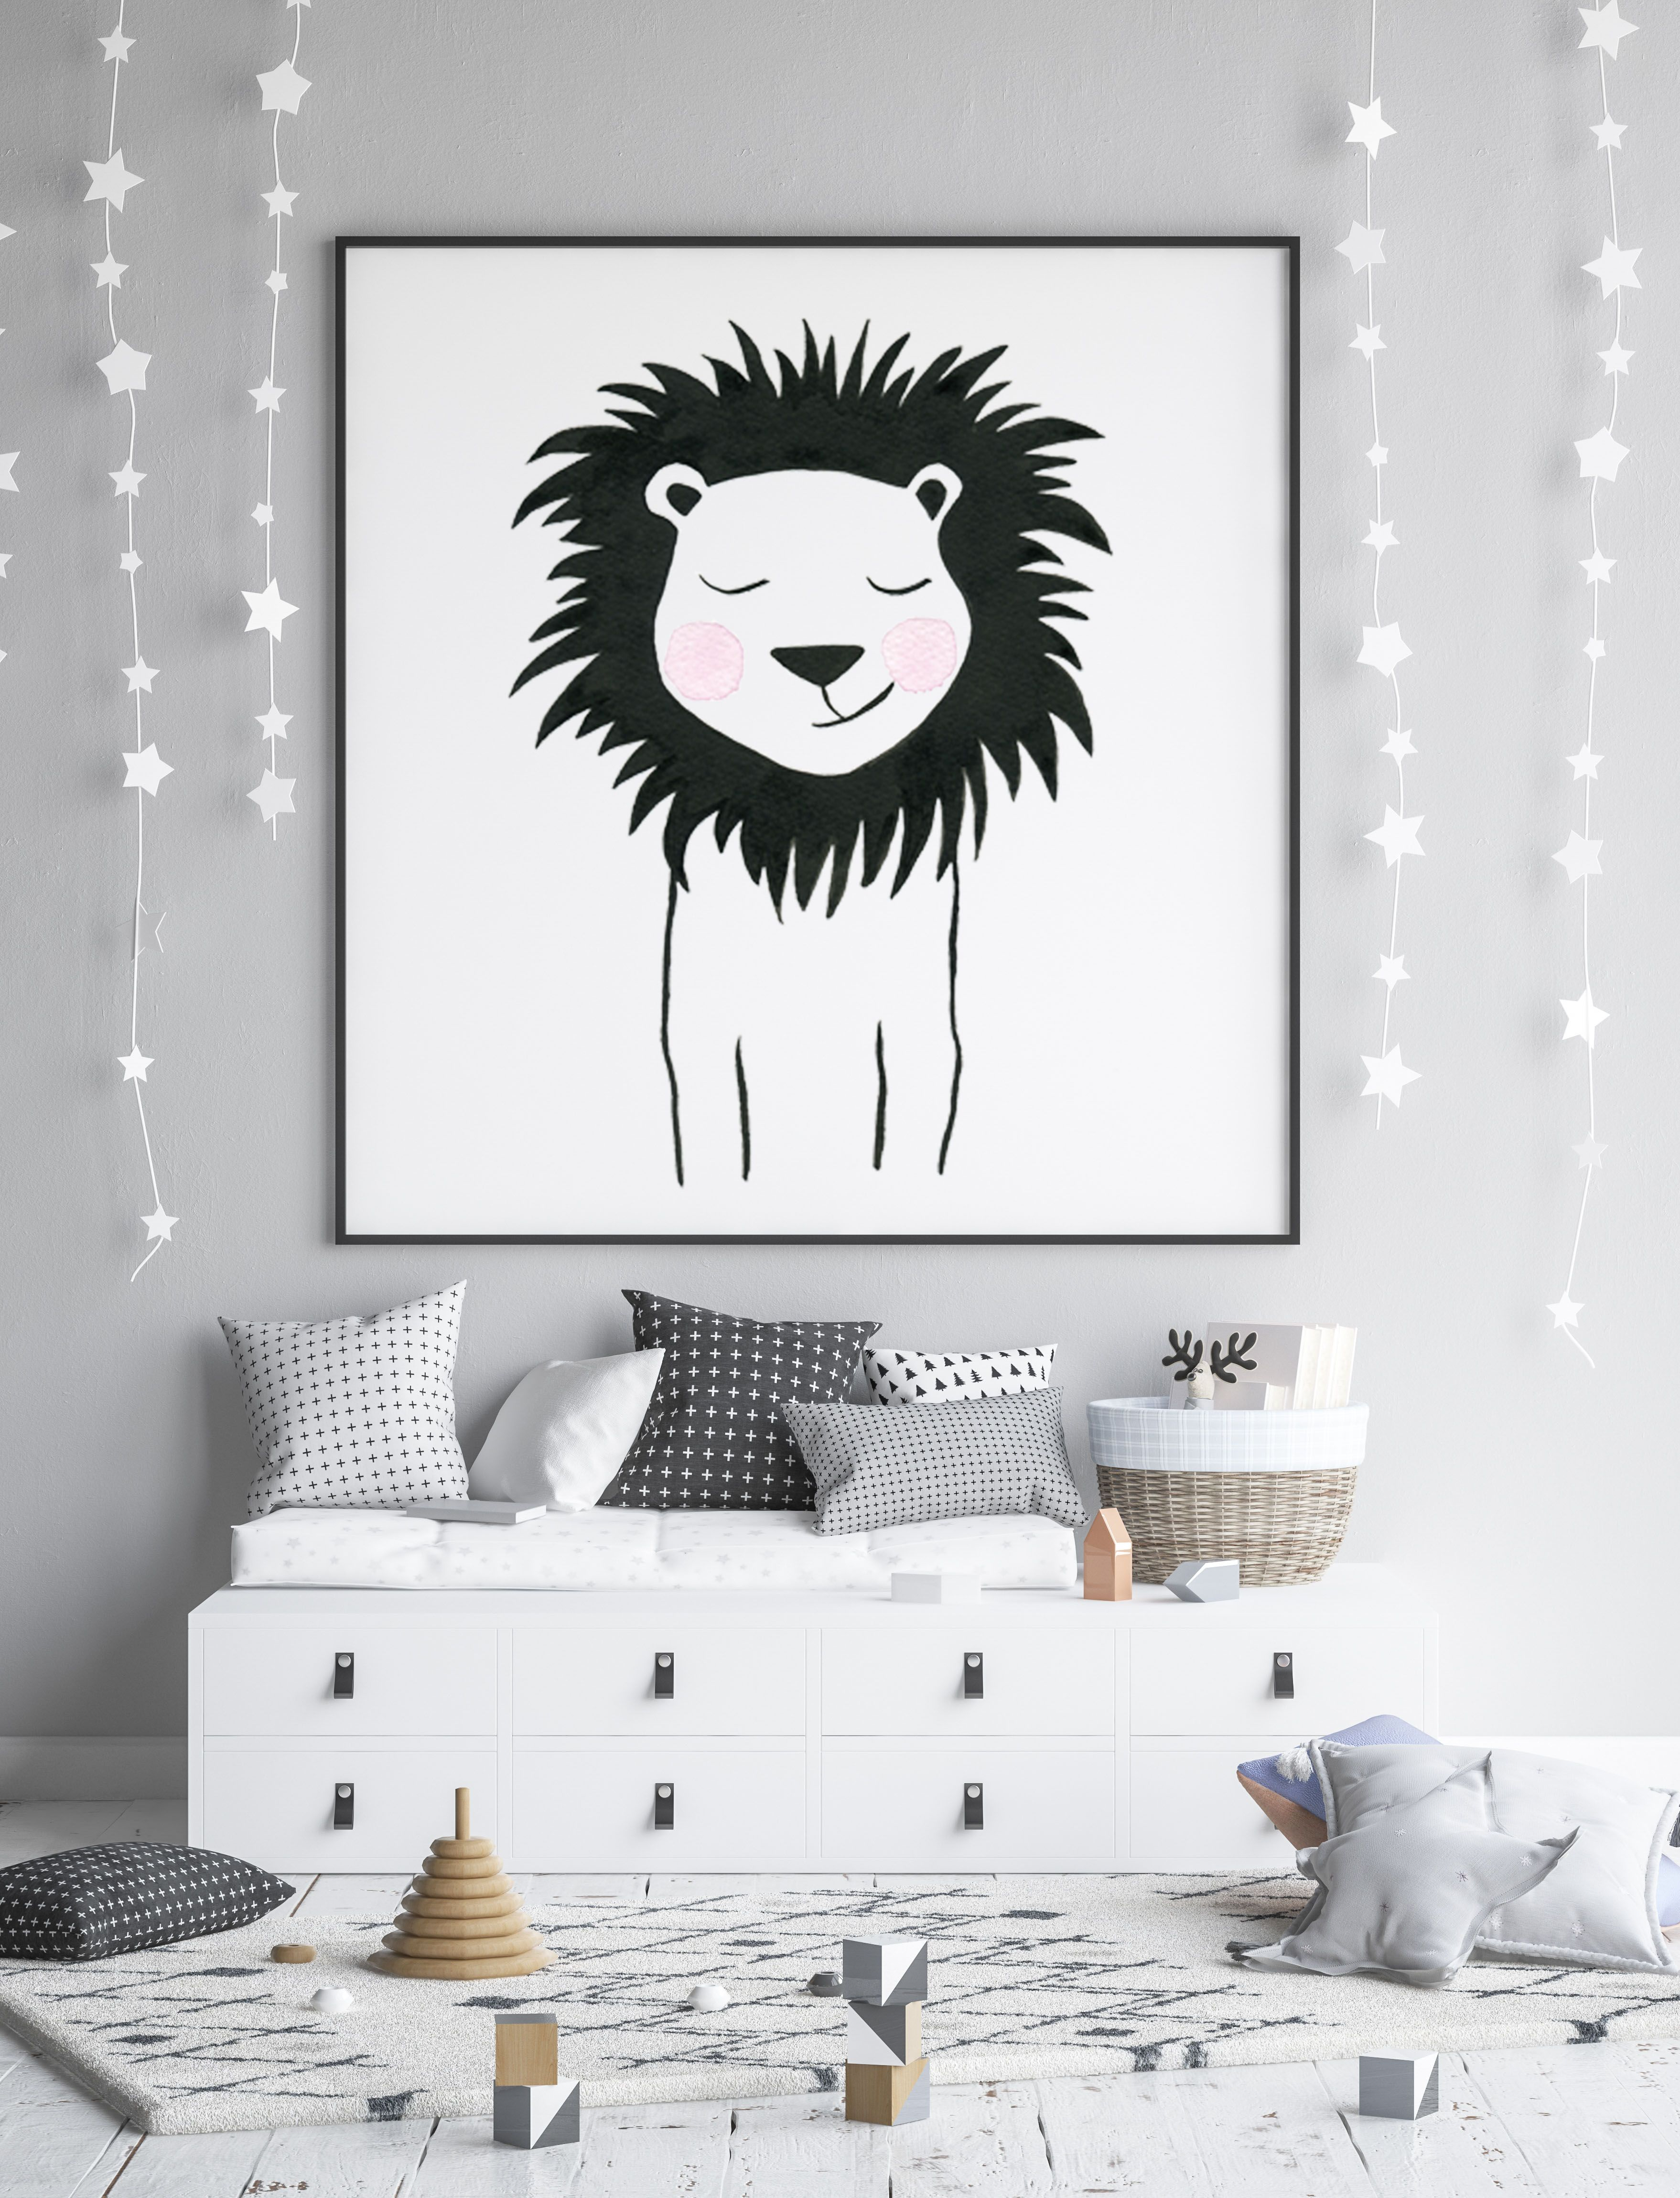 Lion Nursery Wall Art Print Baby Room Decor Original Watercolor Painting Black And White Animal Poster Animal Pictures Set Baby Room Art Baby Wall Art Animal Wall Art Prints